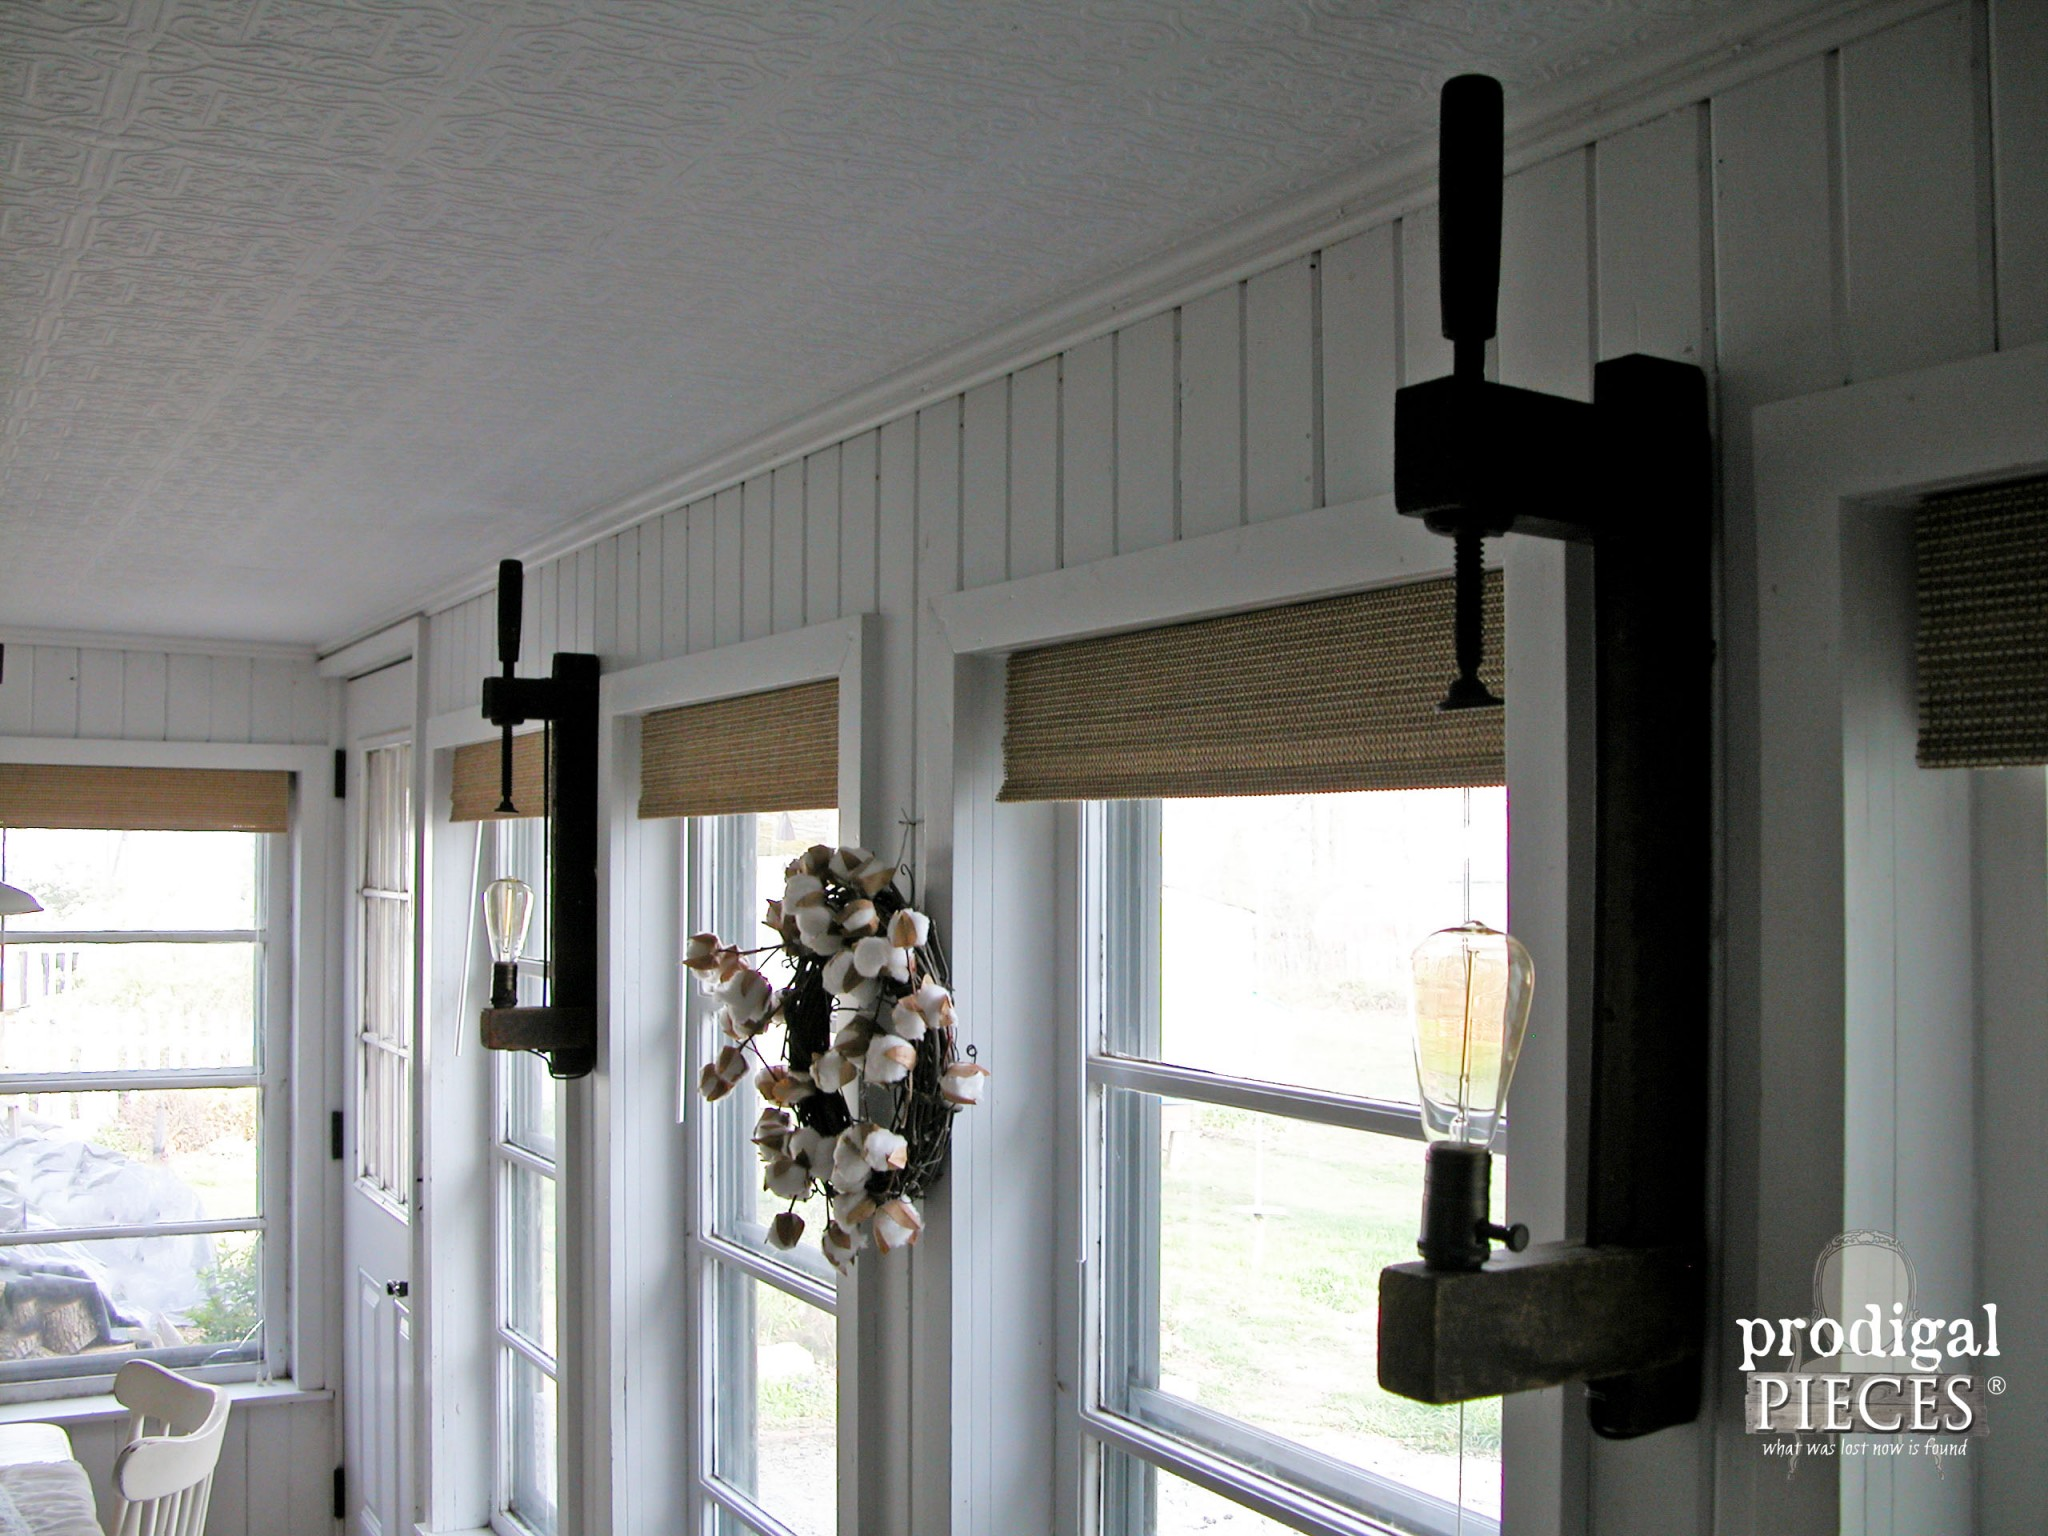 Repurposed Farm Tool Wooden Clamp as Wall Sconce by Prodigal Pieces | www.prodigalpieces.com